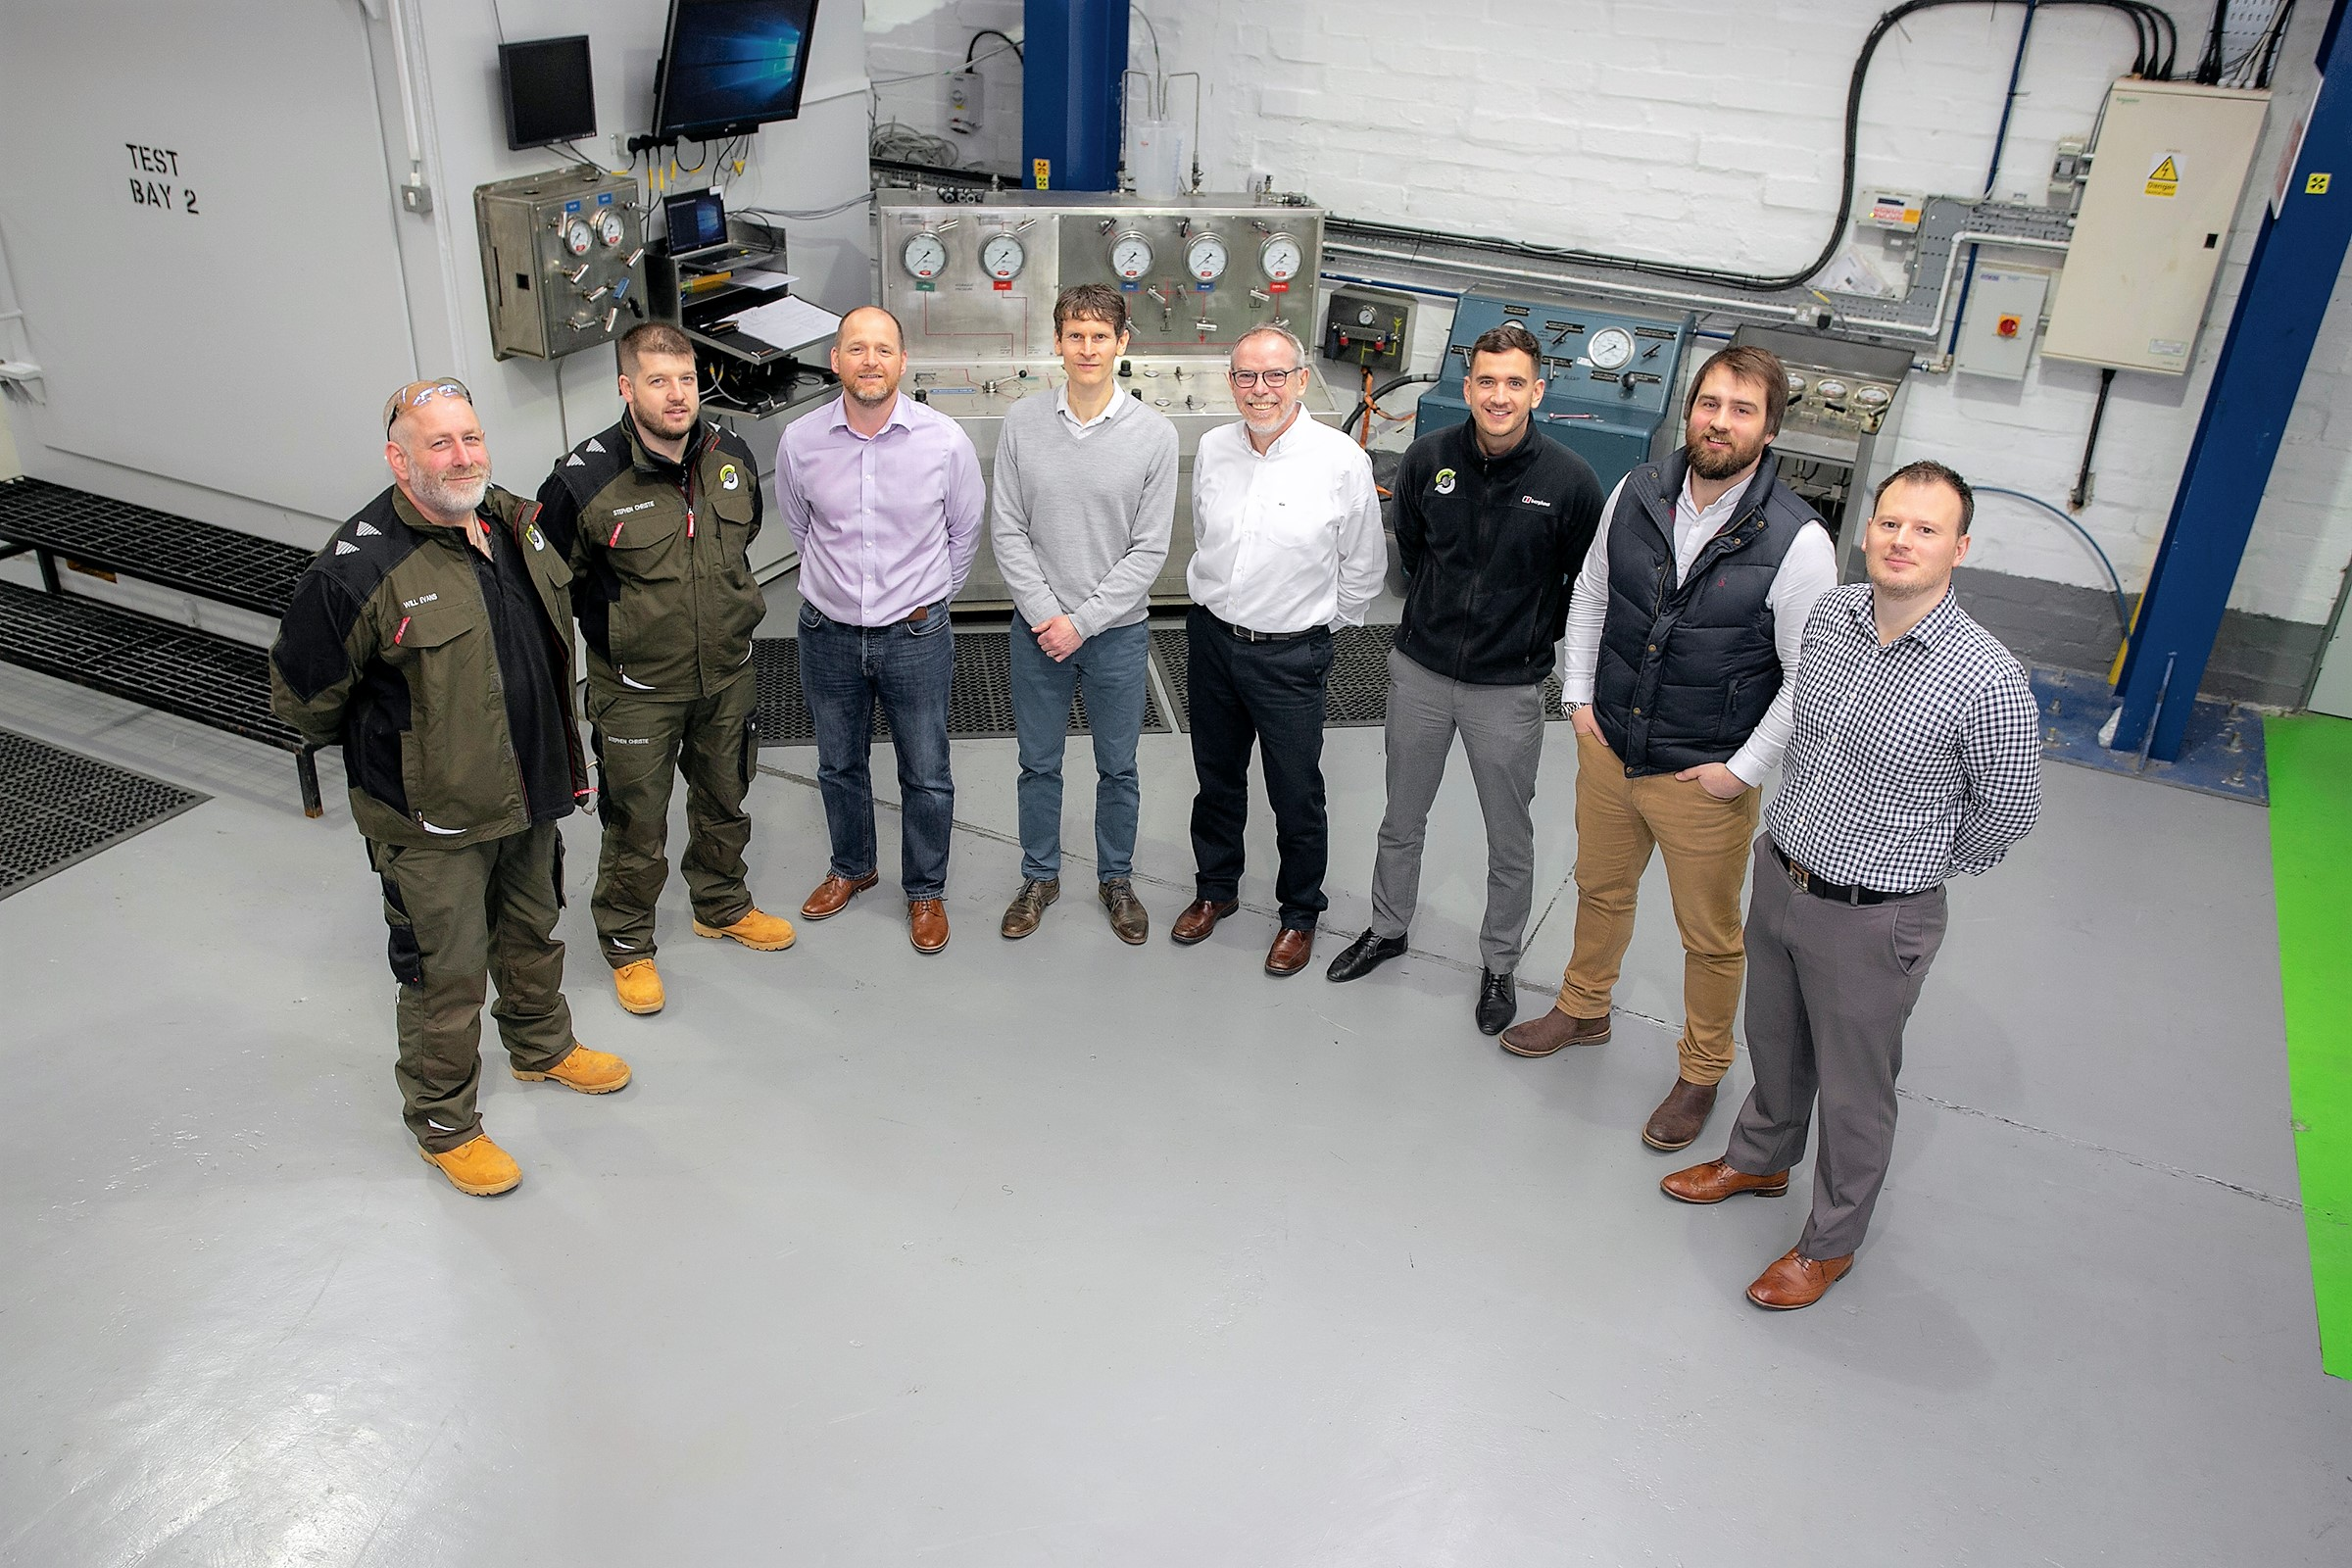 Interventek's team of new staff pictured with directors John Sangster and Gavin Cowie. L-R: Will Evans, workshop manager; Stephen Christie, workshop technician; John Sangster, technical director; Chris Mutch, project engineer; Gavin Cowie, managing director; Euan Mitchell, design engineer; Fraser Gray, design engineer; Steven Burnett, design engineer.